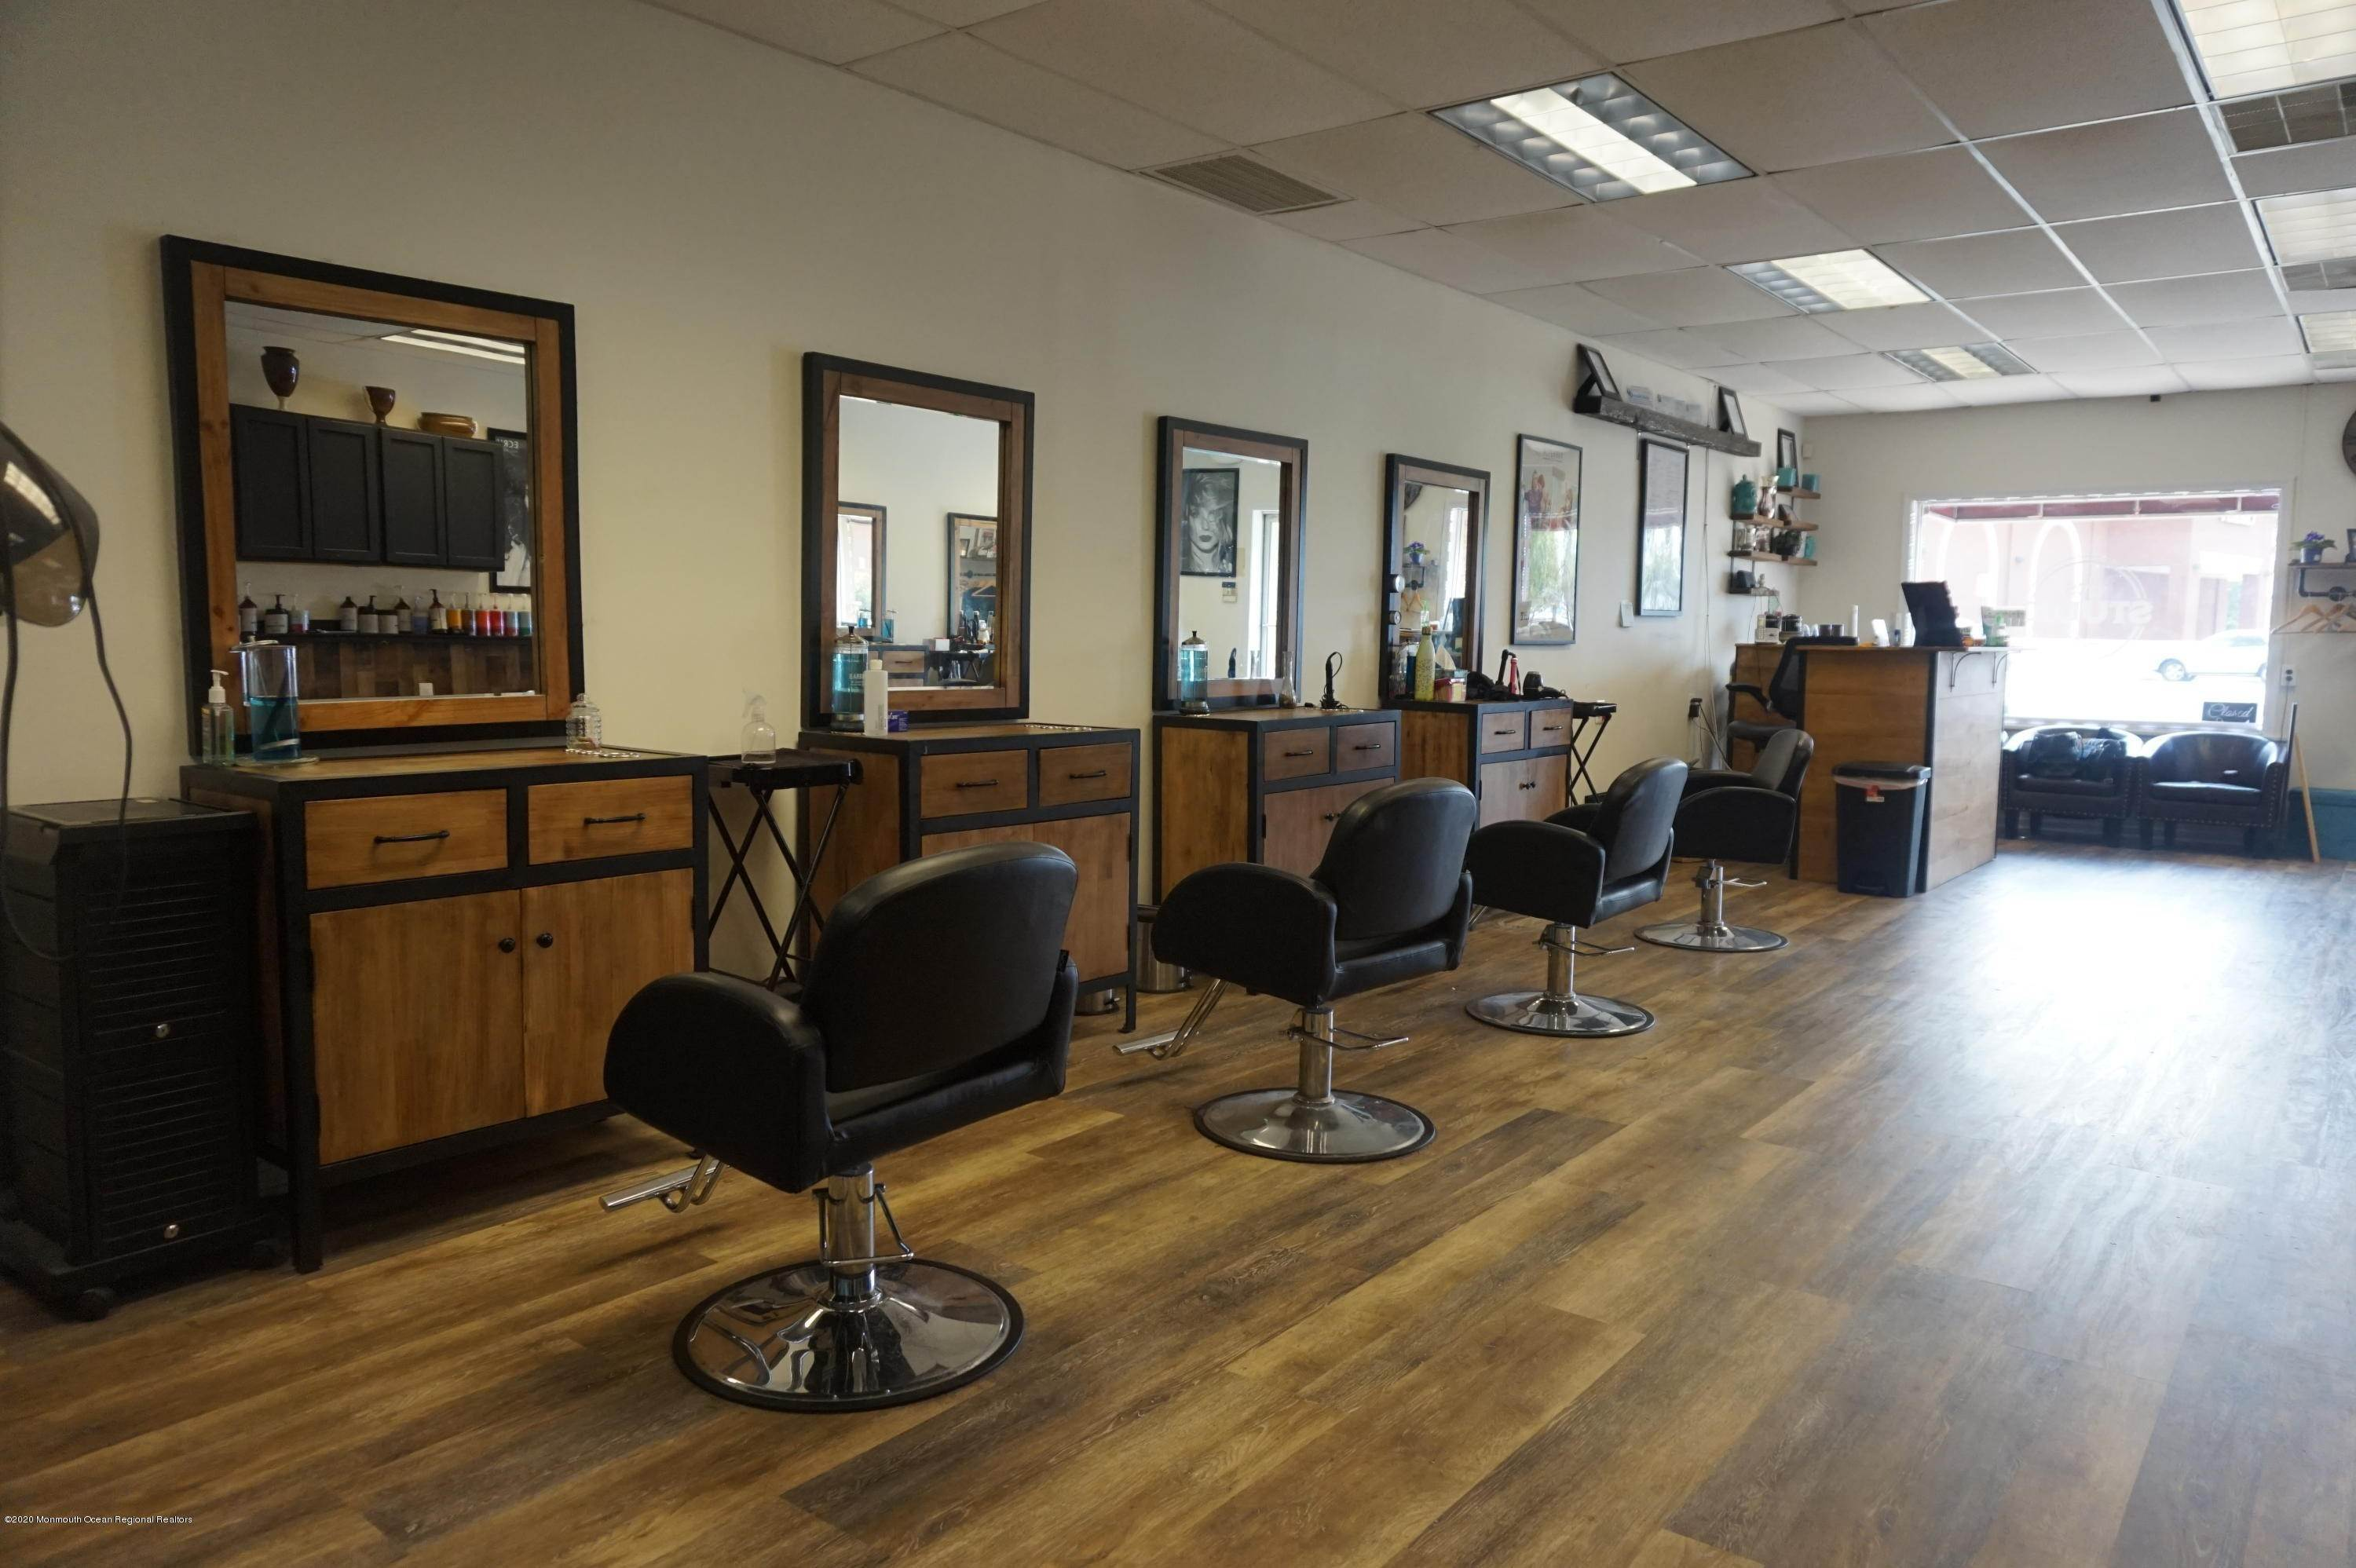 Business for Sale at 917 Main Street Toms River, New Jersey 08753 United States